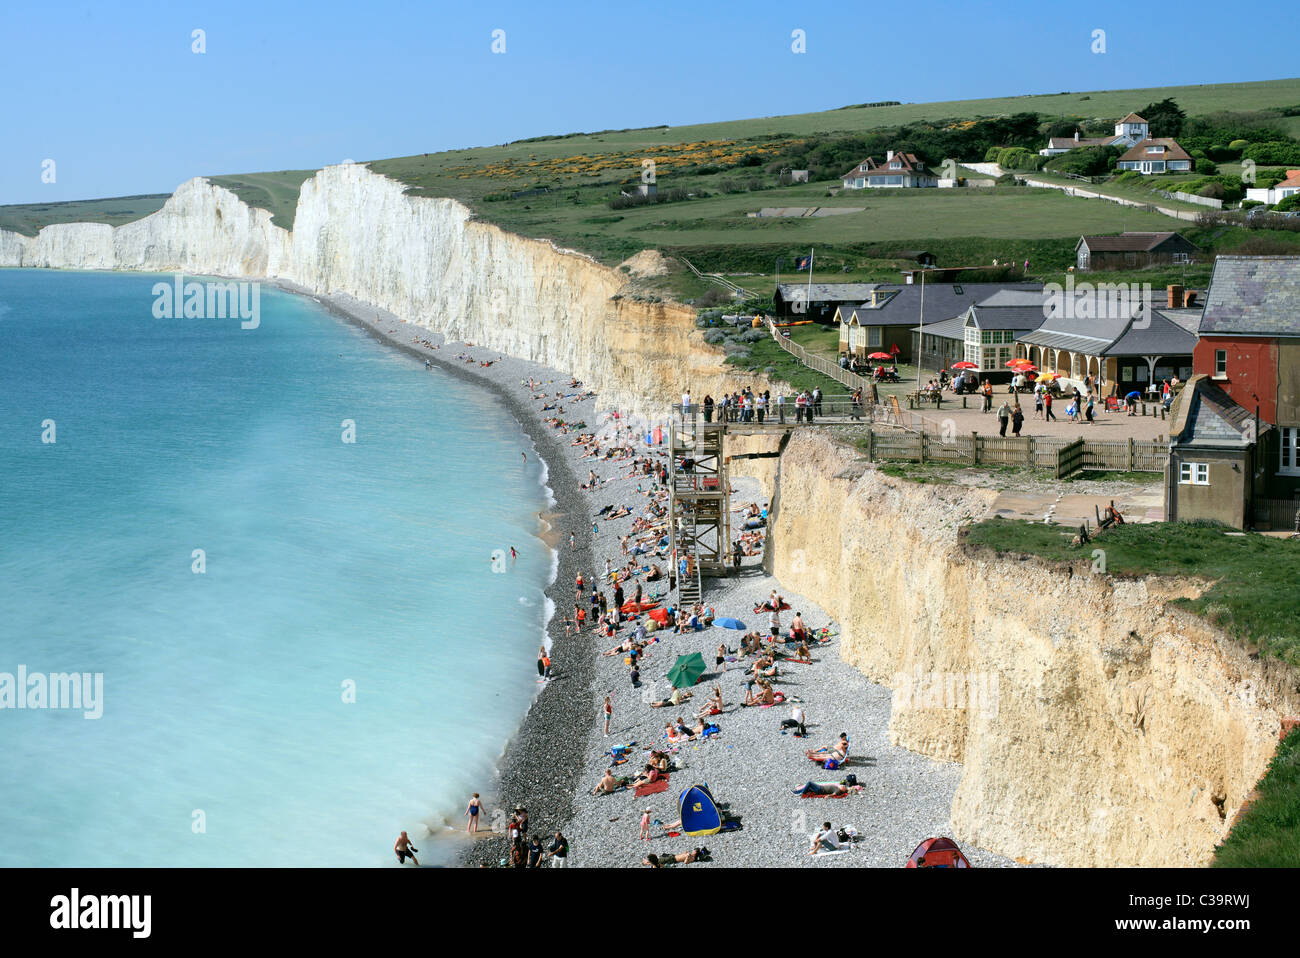 Birling Gap, between the Seven Sisters cliffs (background) and Beachy Head, East Sussex. Part of the South Downs - Stock Image